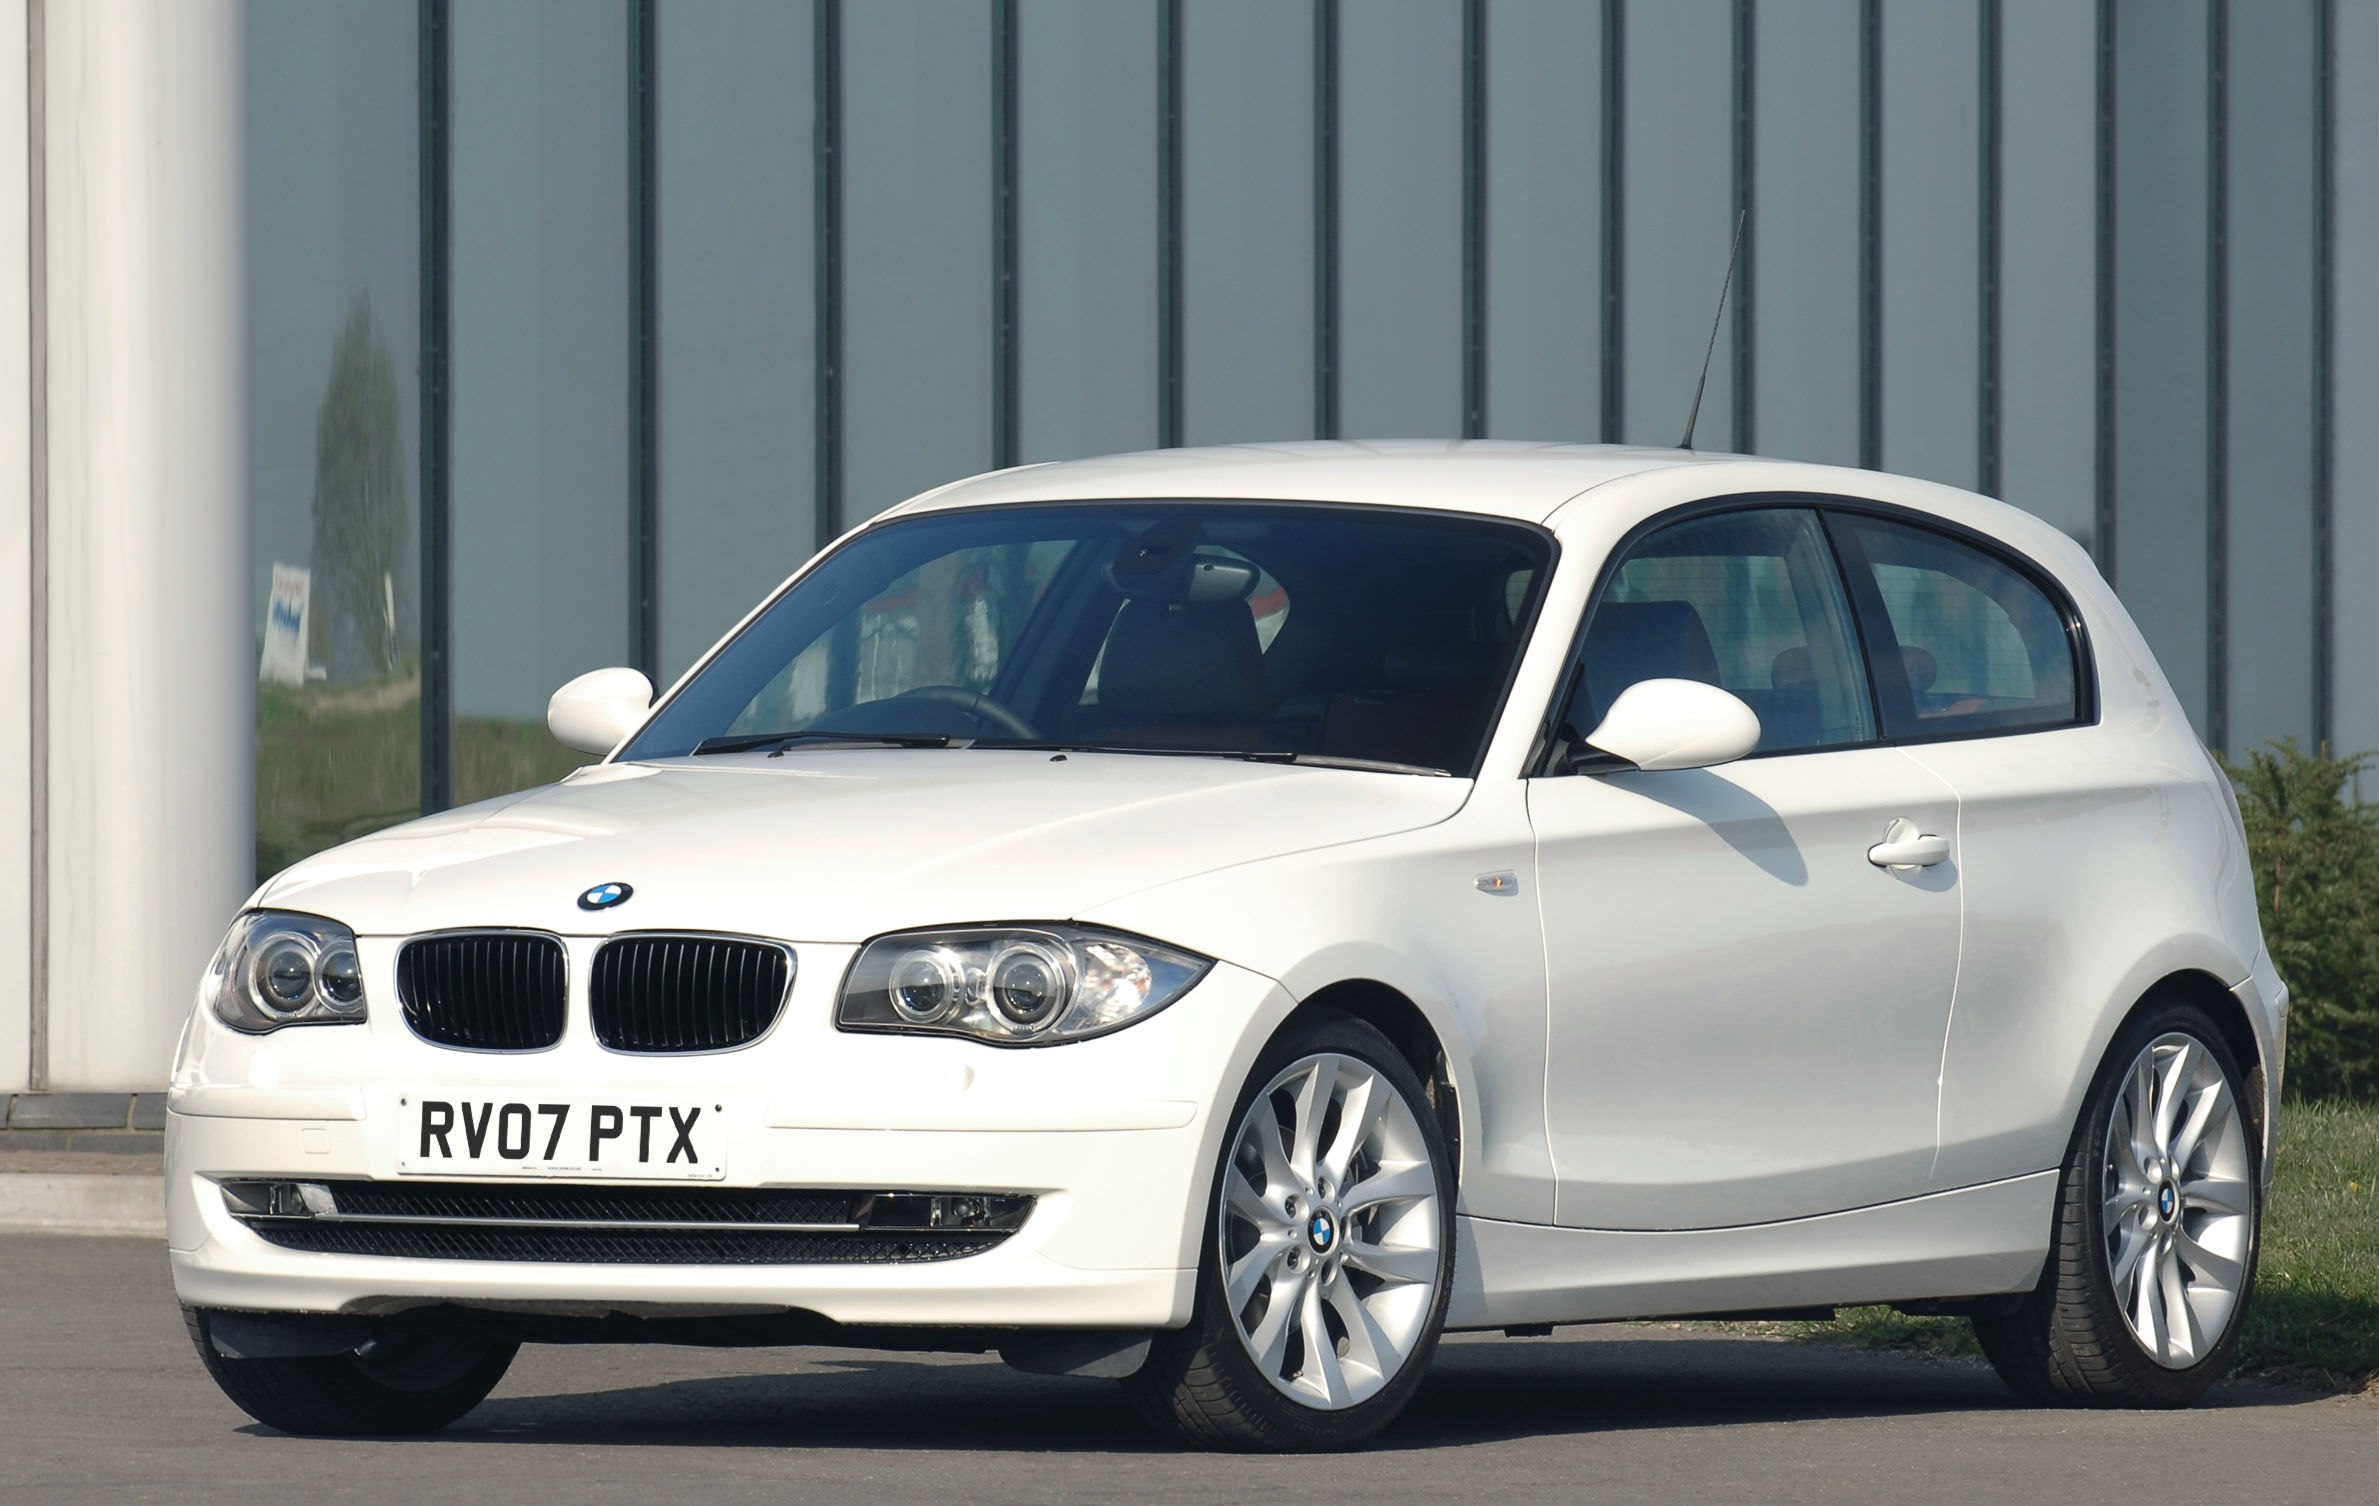 White BMW recall car